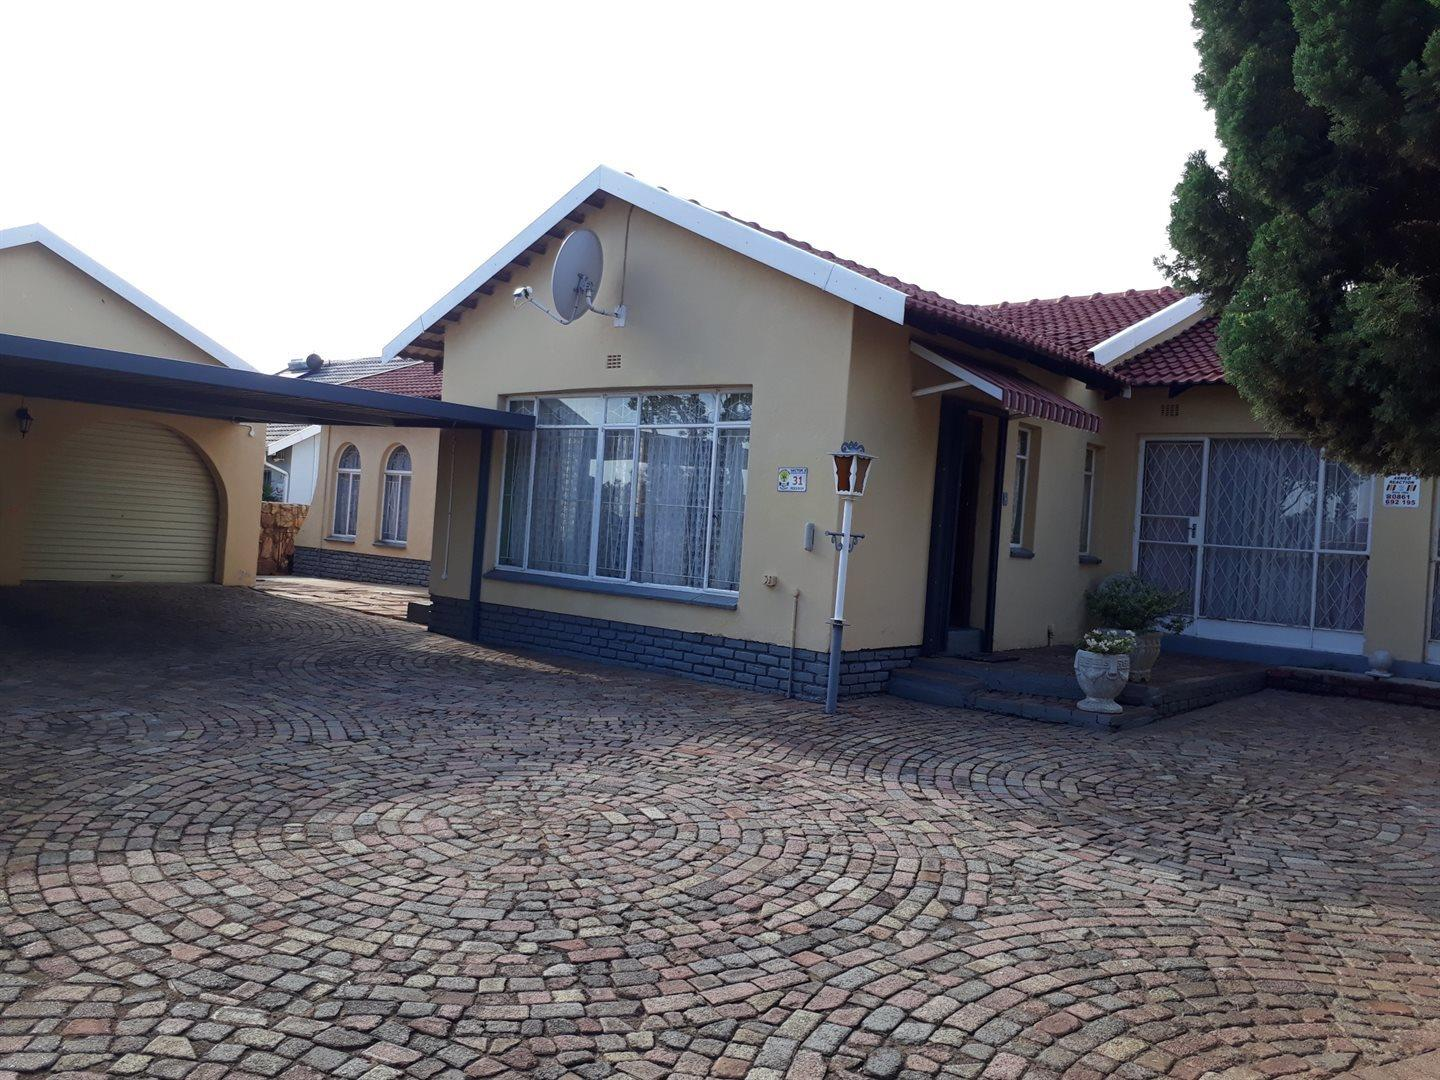 3 Bedroom  House for Sale in Krugersdorp - Gauteng